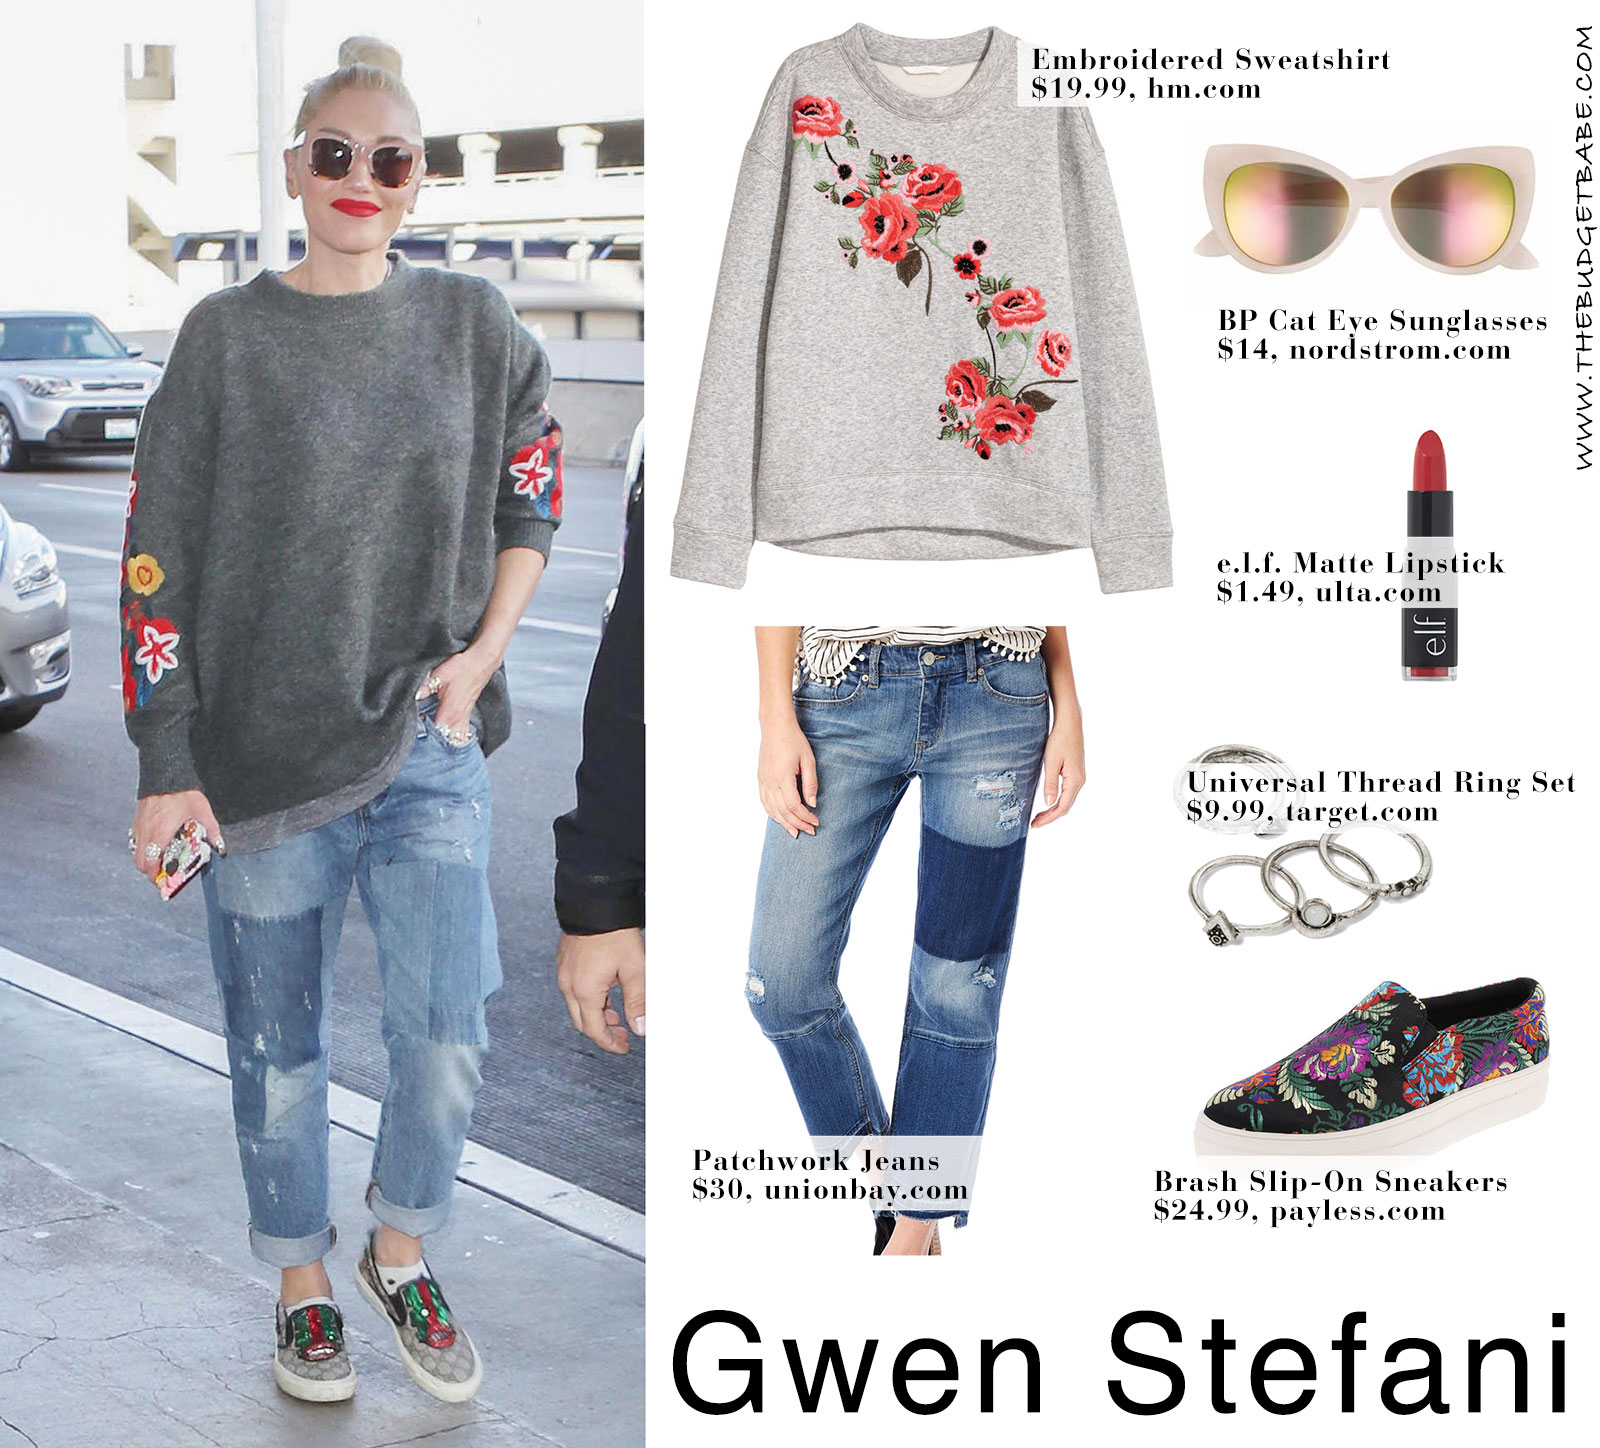 Gwen Stefani's floral embroidered sweatshirt and Gucci sneakers look for less